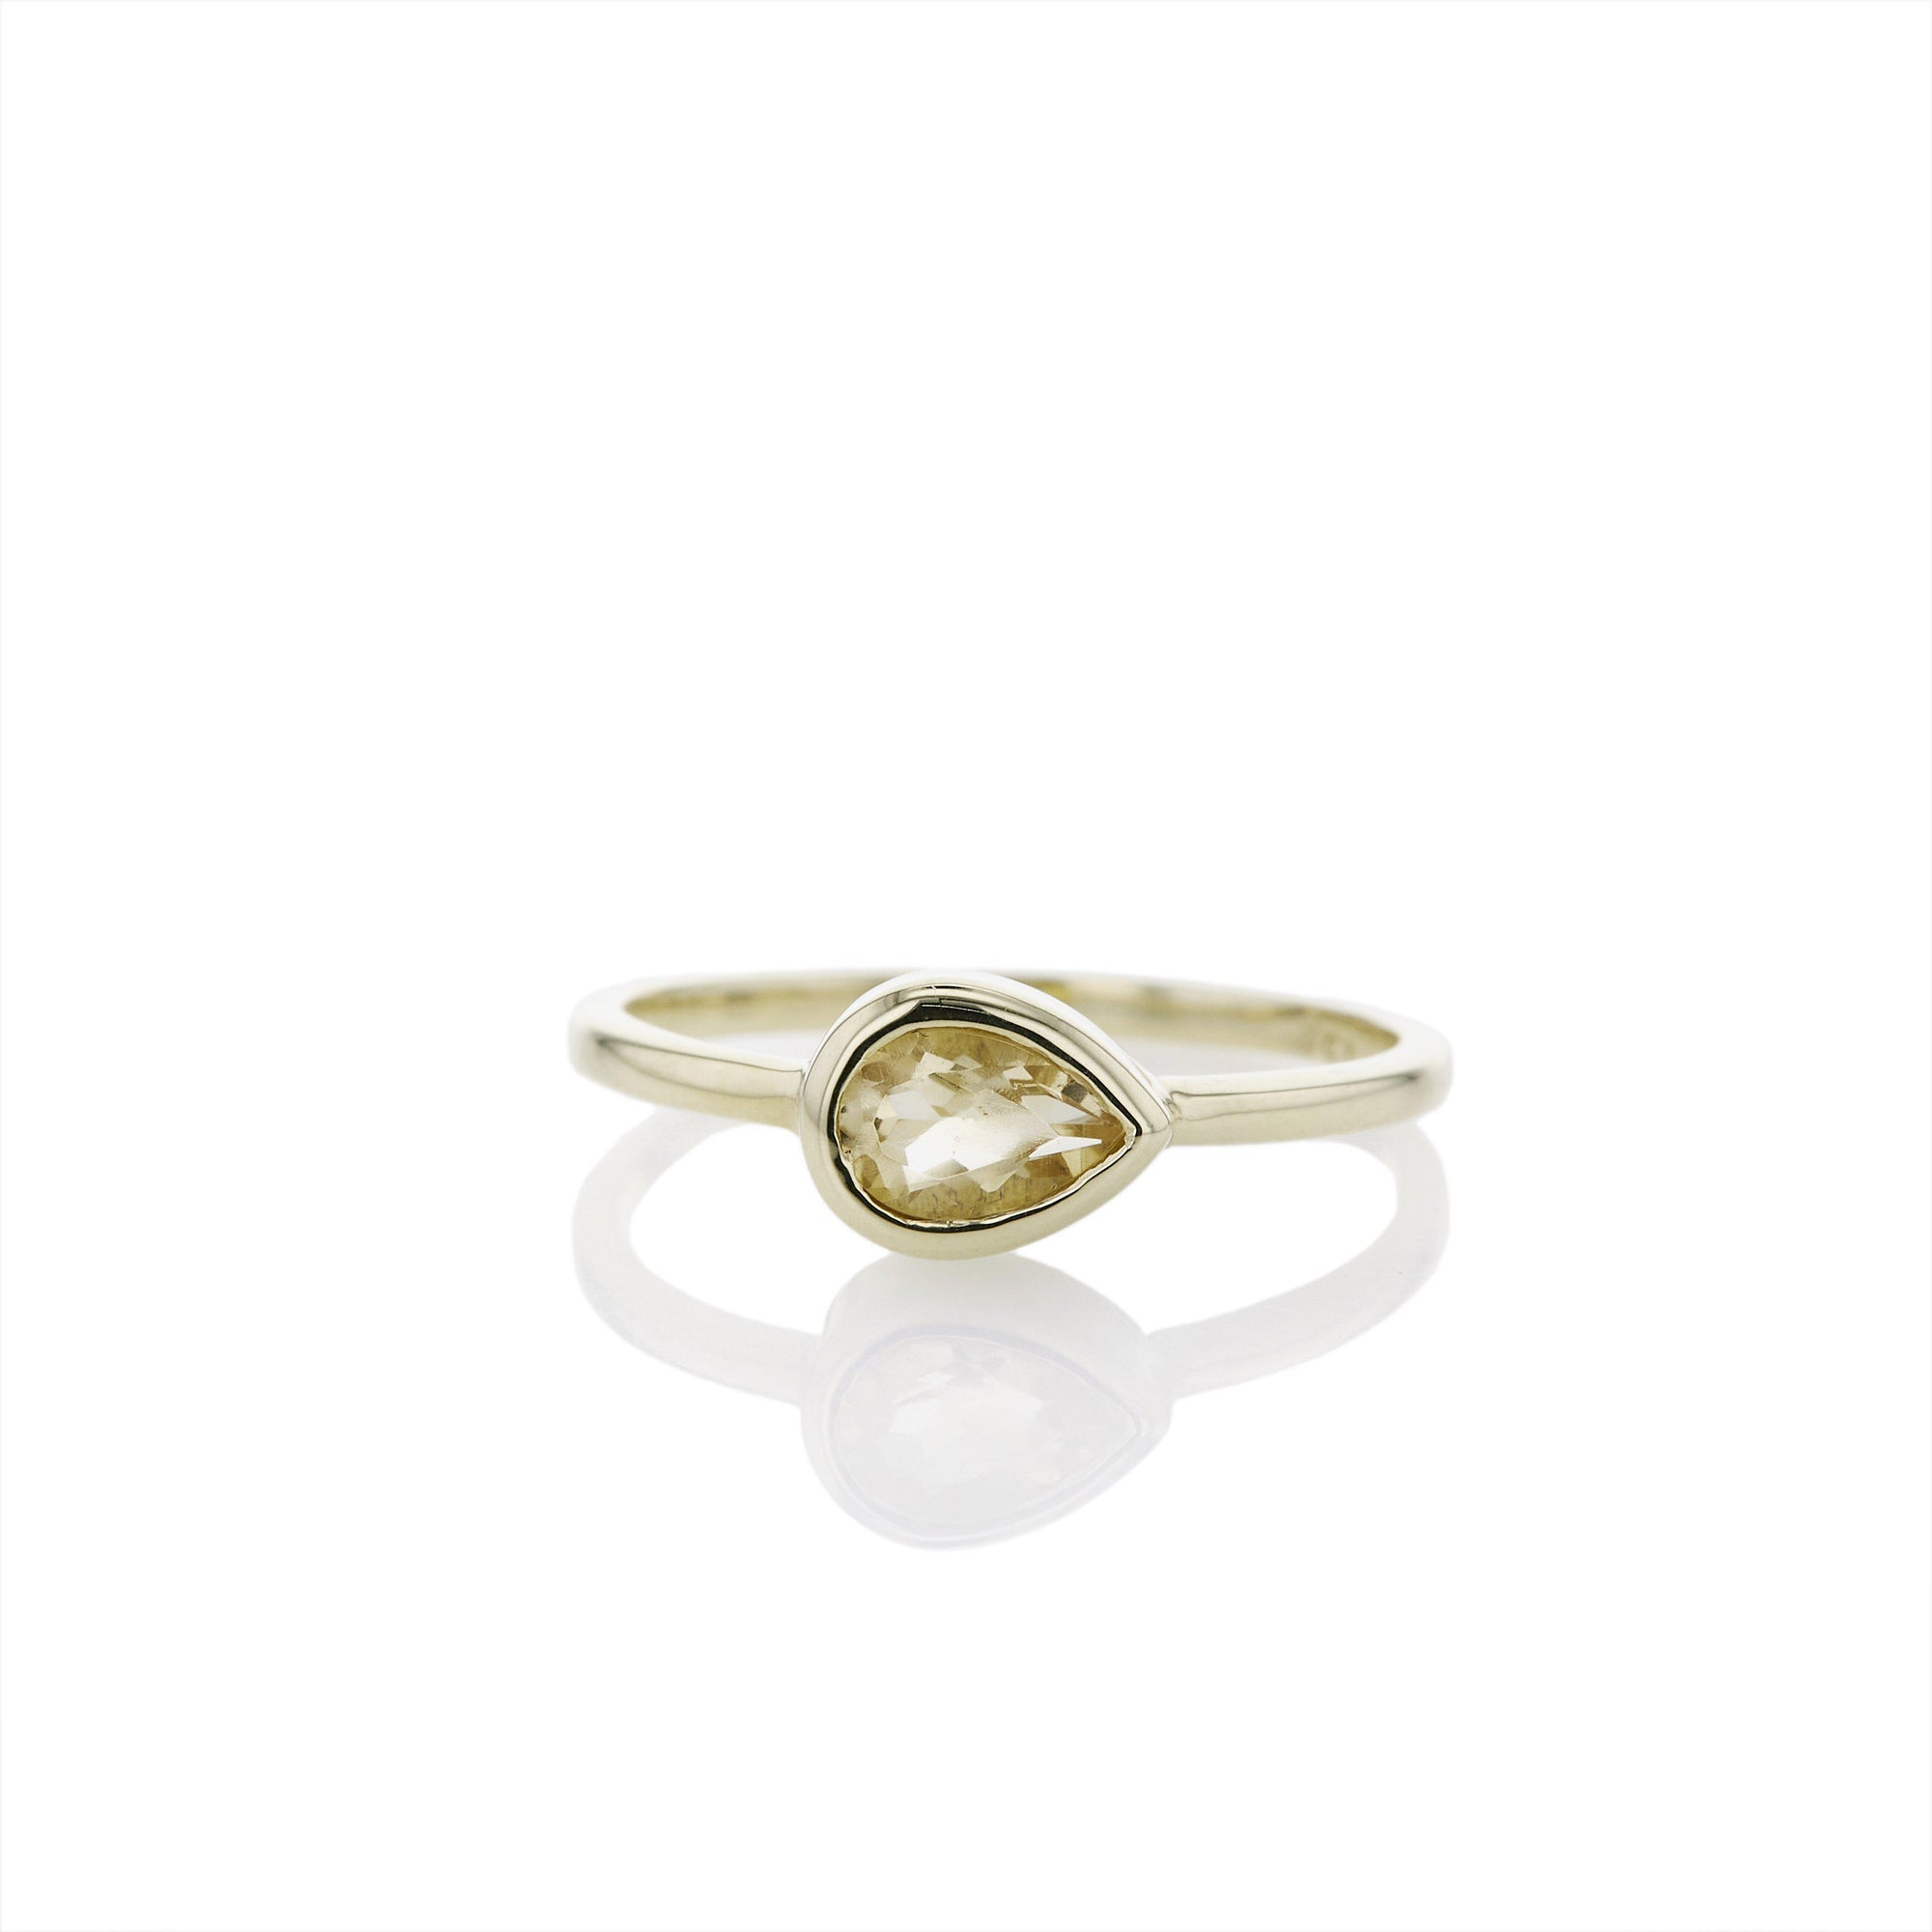 The Pear Cut Citrine Stacker in 9kt Gold